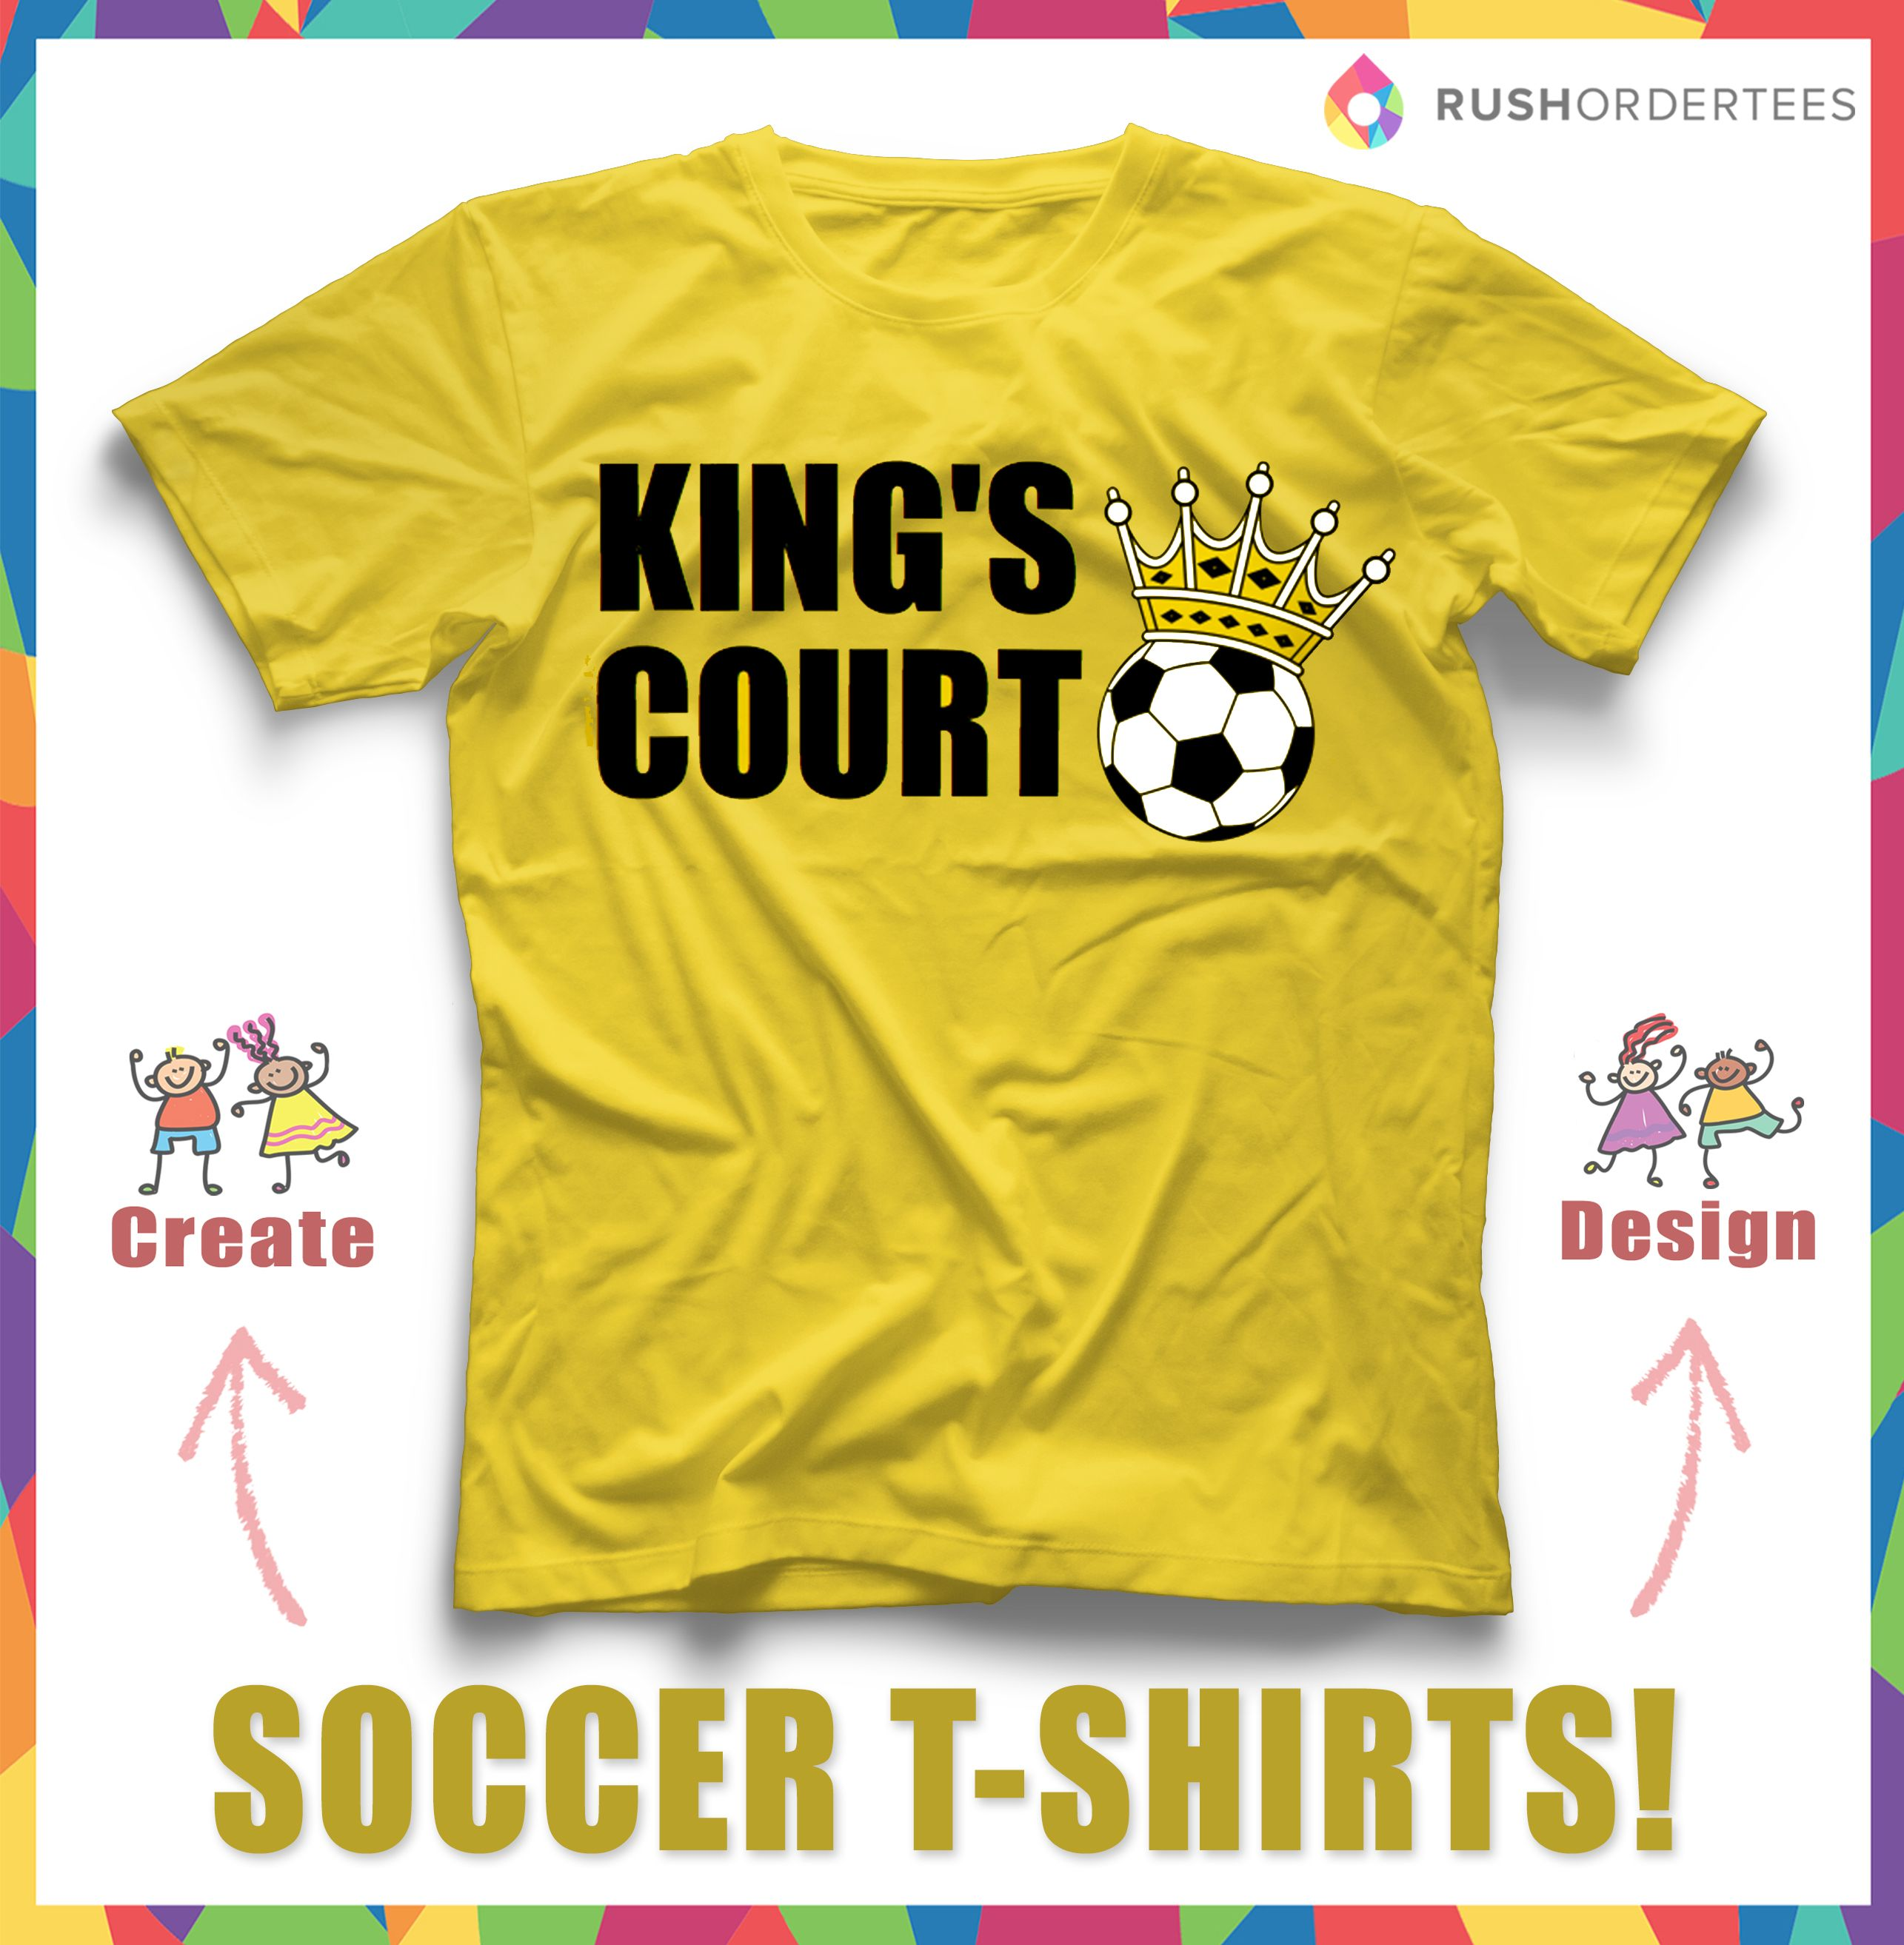 soccer t shirts for your team design and edit this design in our online - Soccer T Shirt Design Ideas